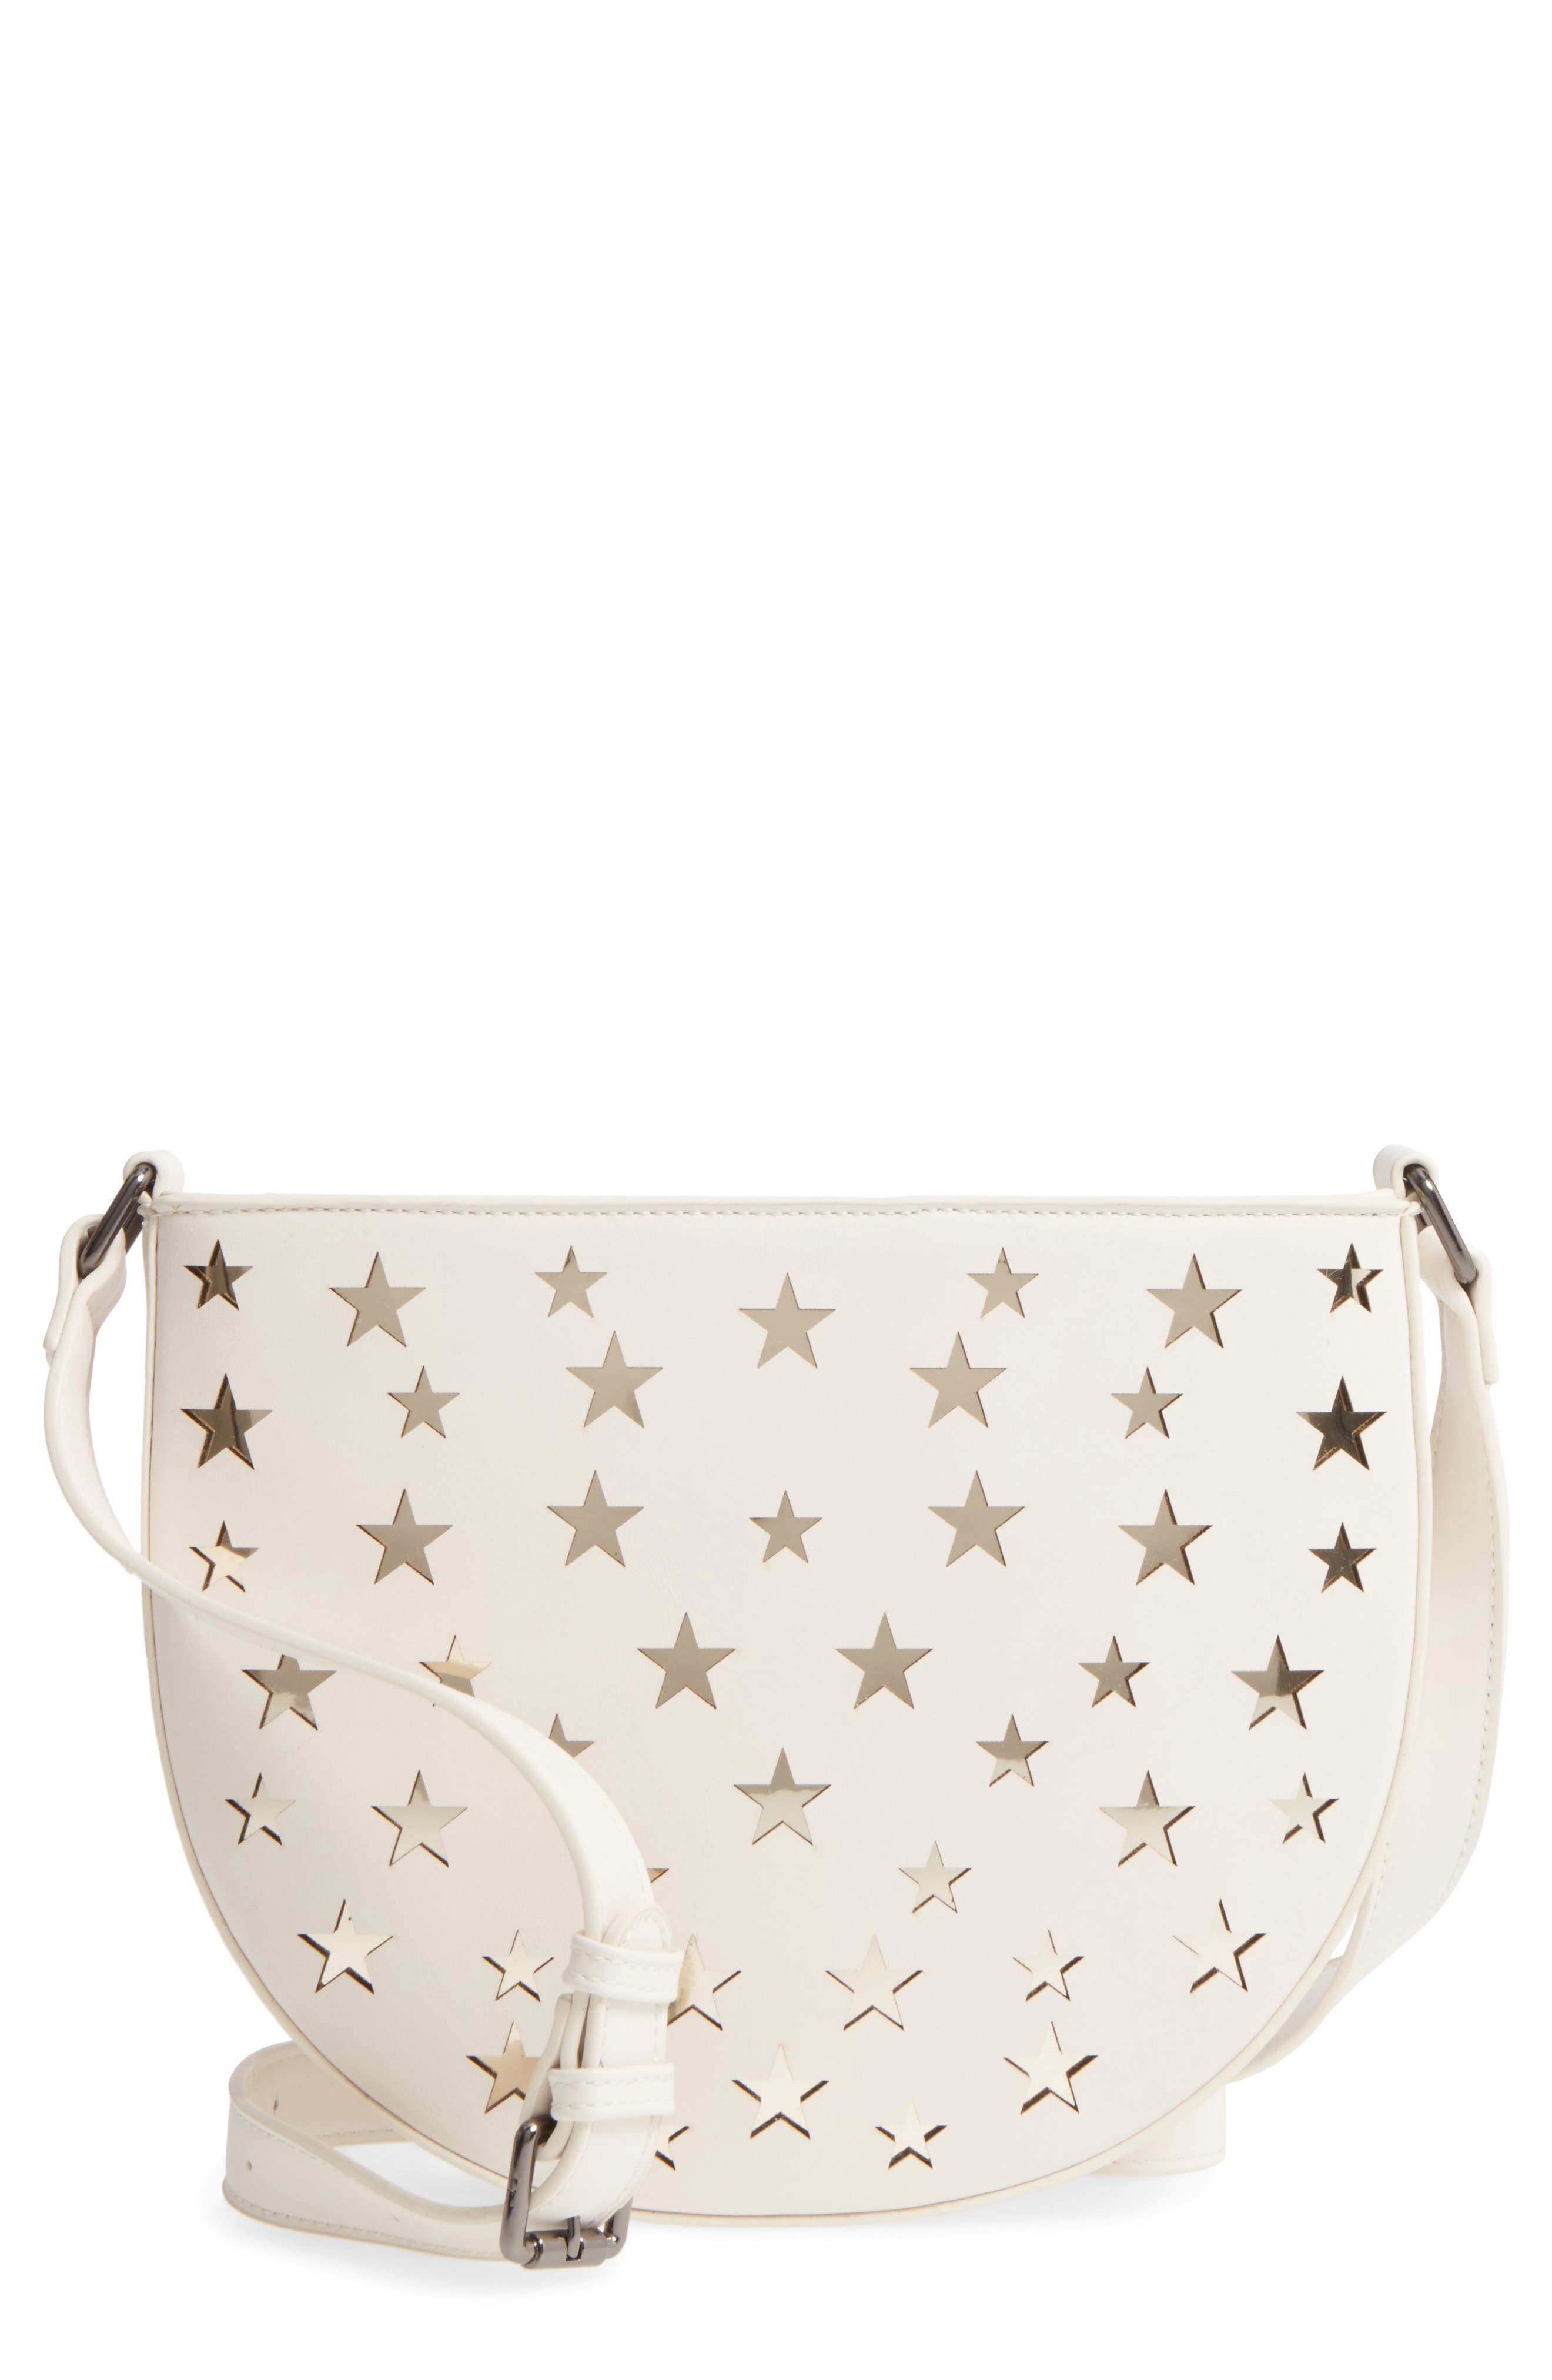 Half Moon Faux Leather Crossbody Bag,                             Main thumbnail 1, color,                             White W/ Gold Stars